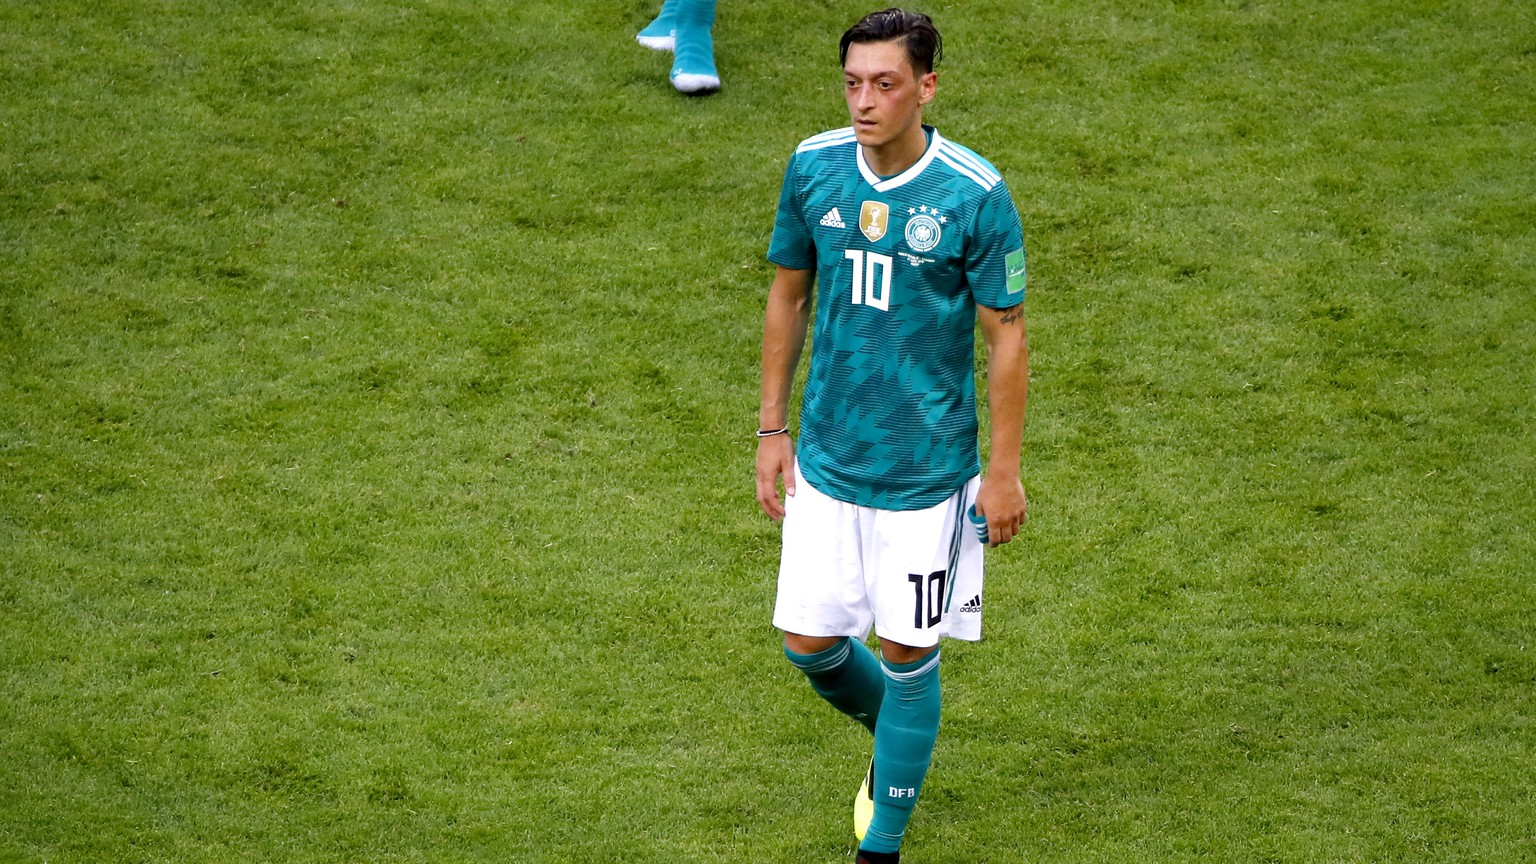 epa06844924 Mesut Oezil of Germany reacts after the FIFA World Cup 2018 group F preliminary round soccer match between South Korea and Germany in Kazan, Russia, 27 June 2018.